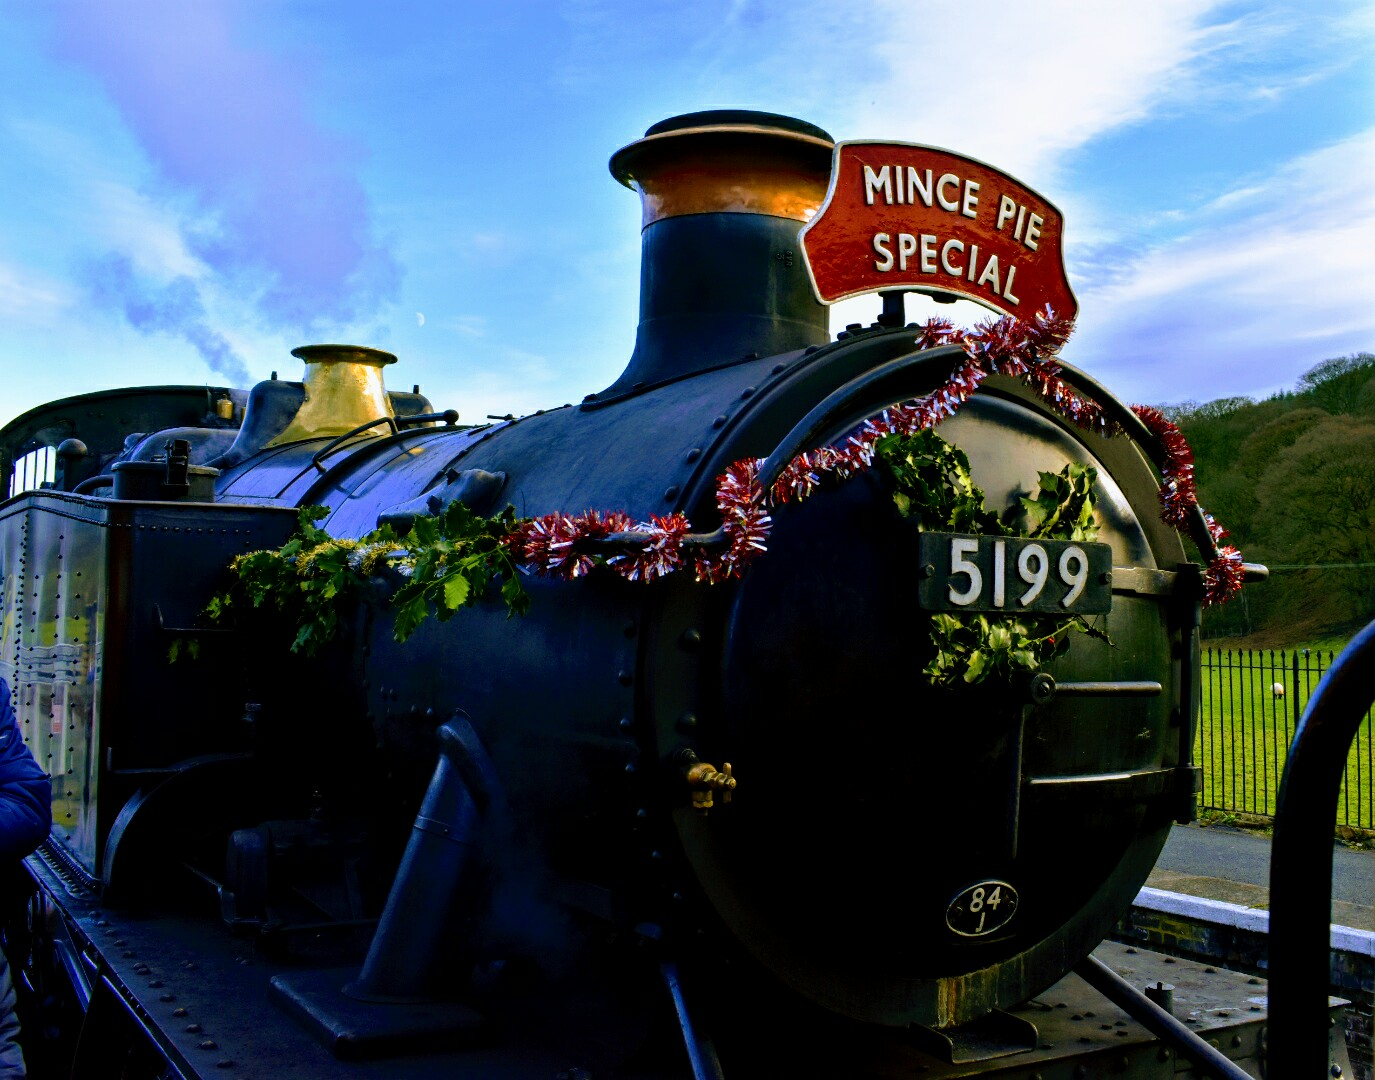 A Mince Pie Special trip on the LLangollen Railway, Wales